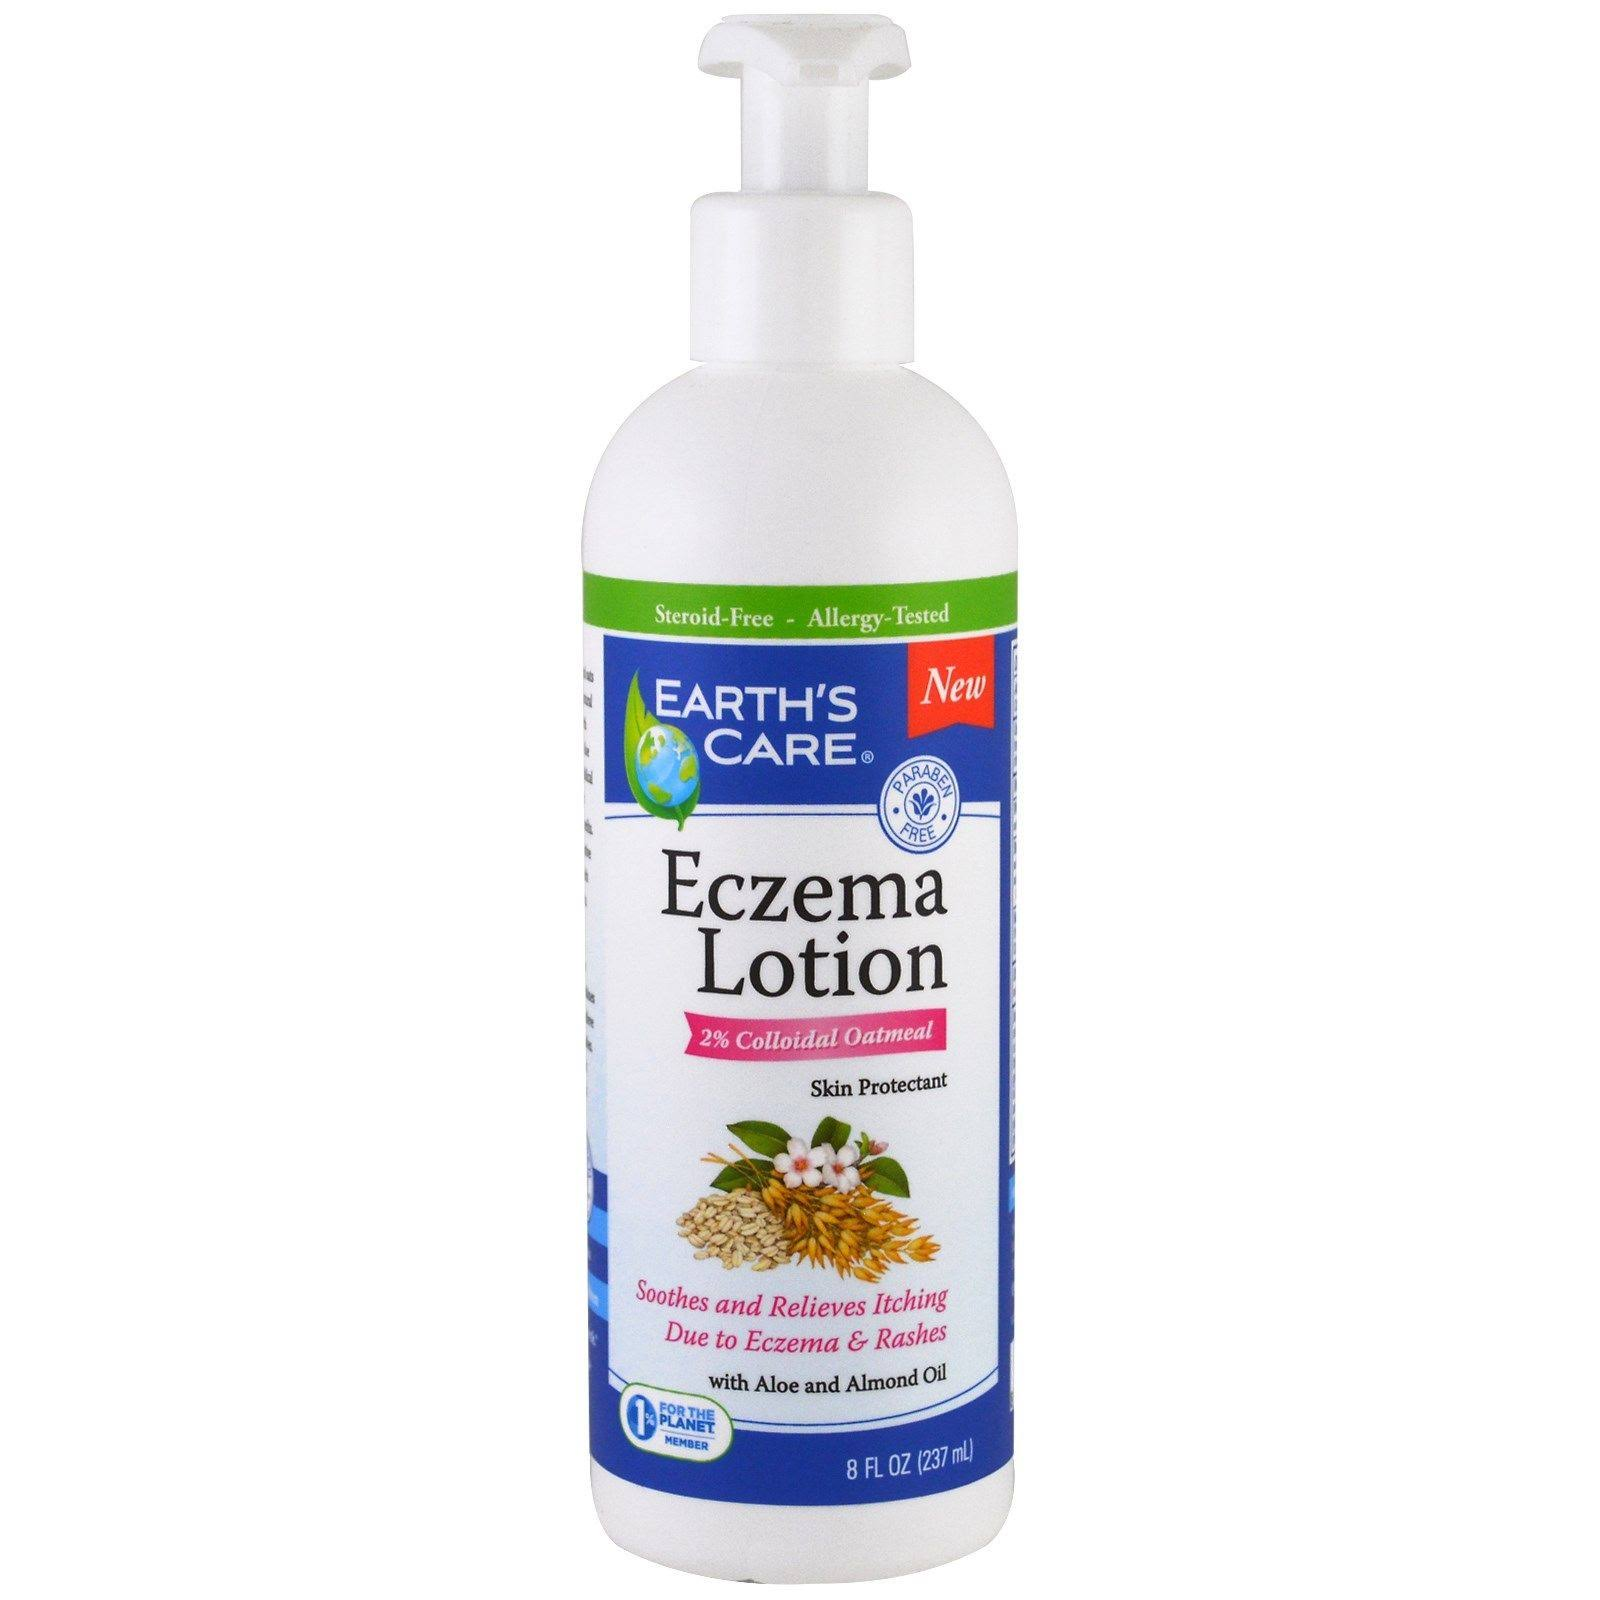 Earth's Care Eczema Lotion - 8oz